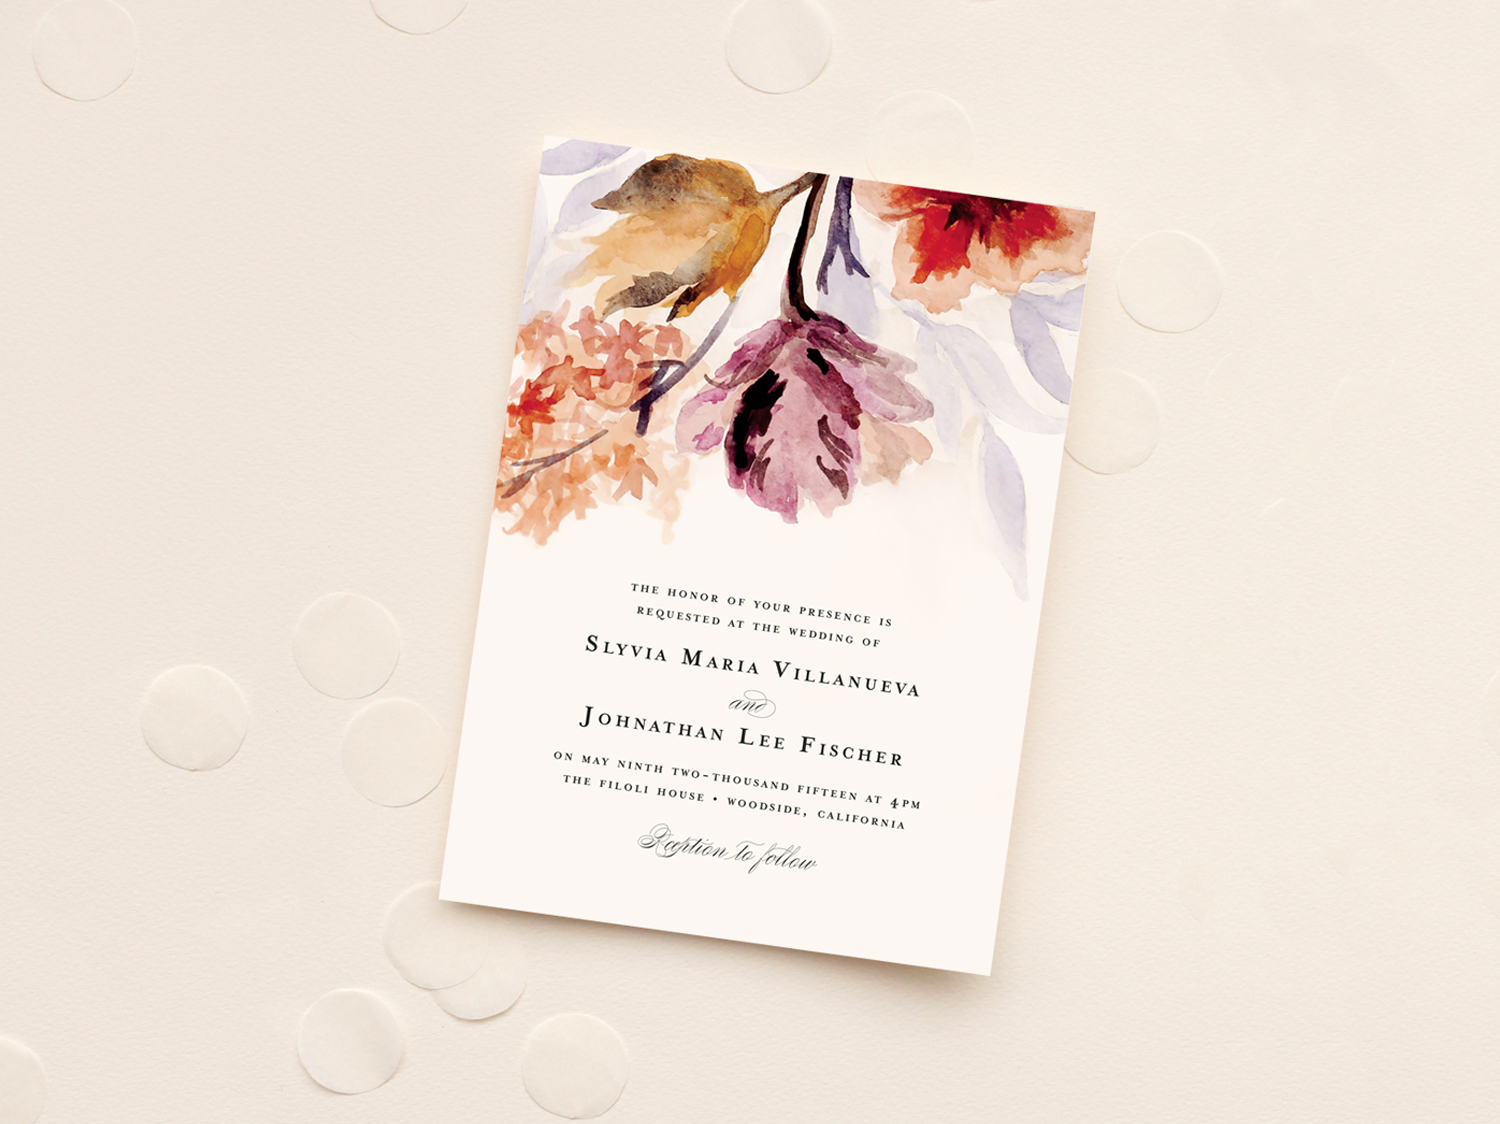 Wedding invitation design and illustration